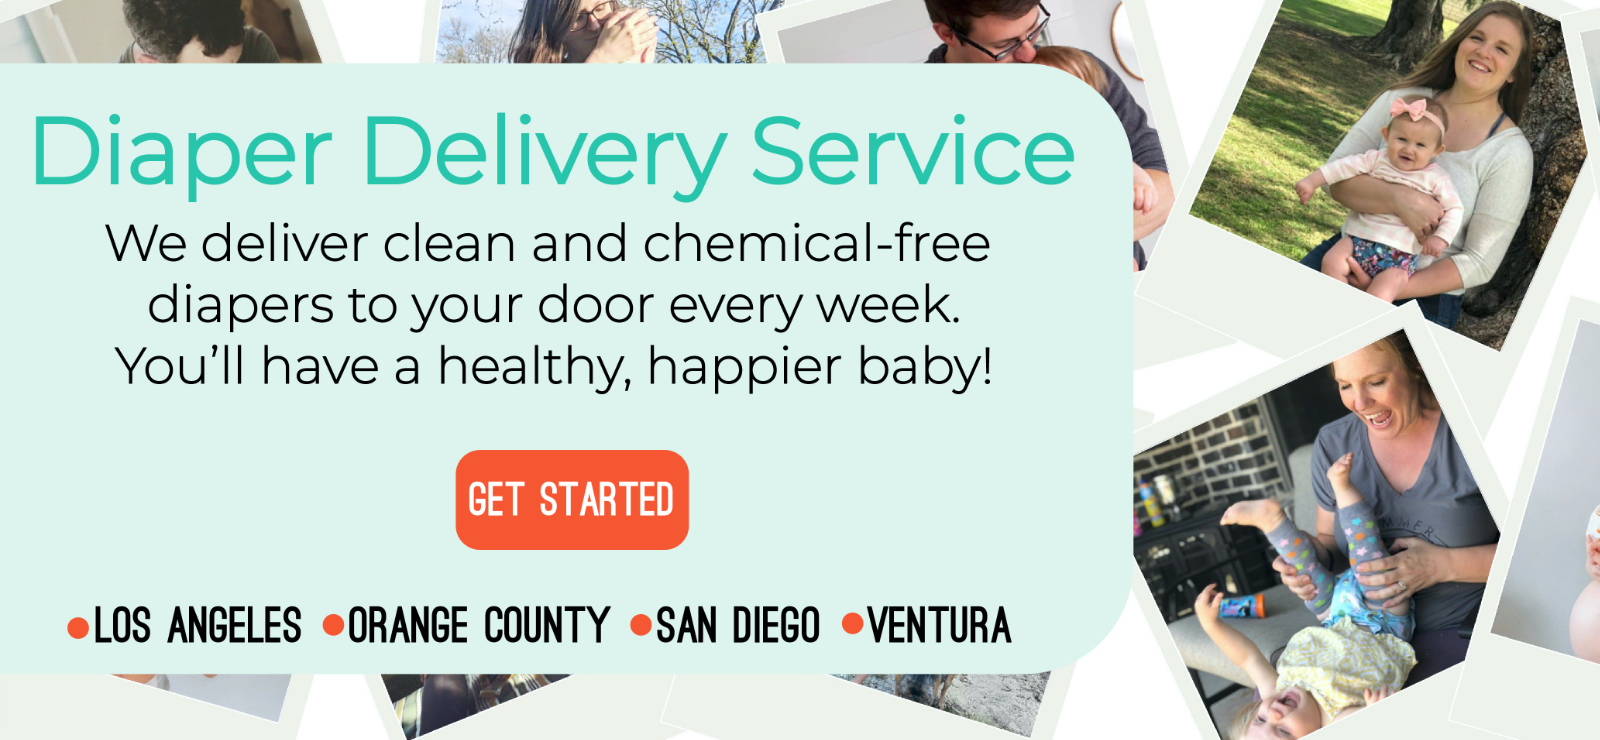 Diaper delivery service banner